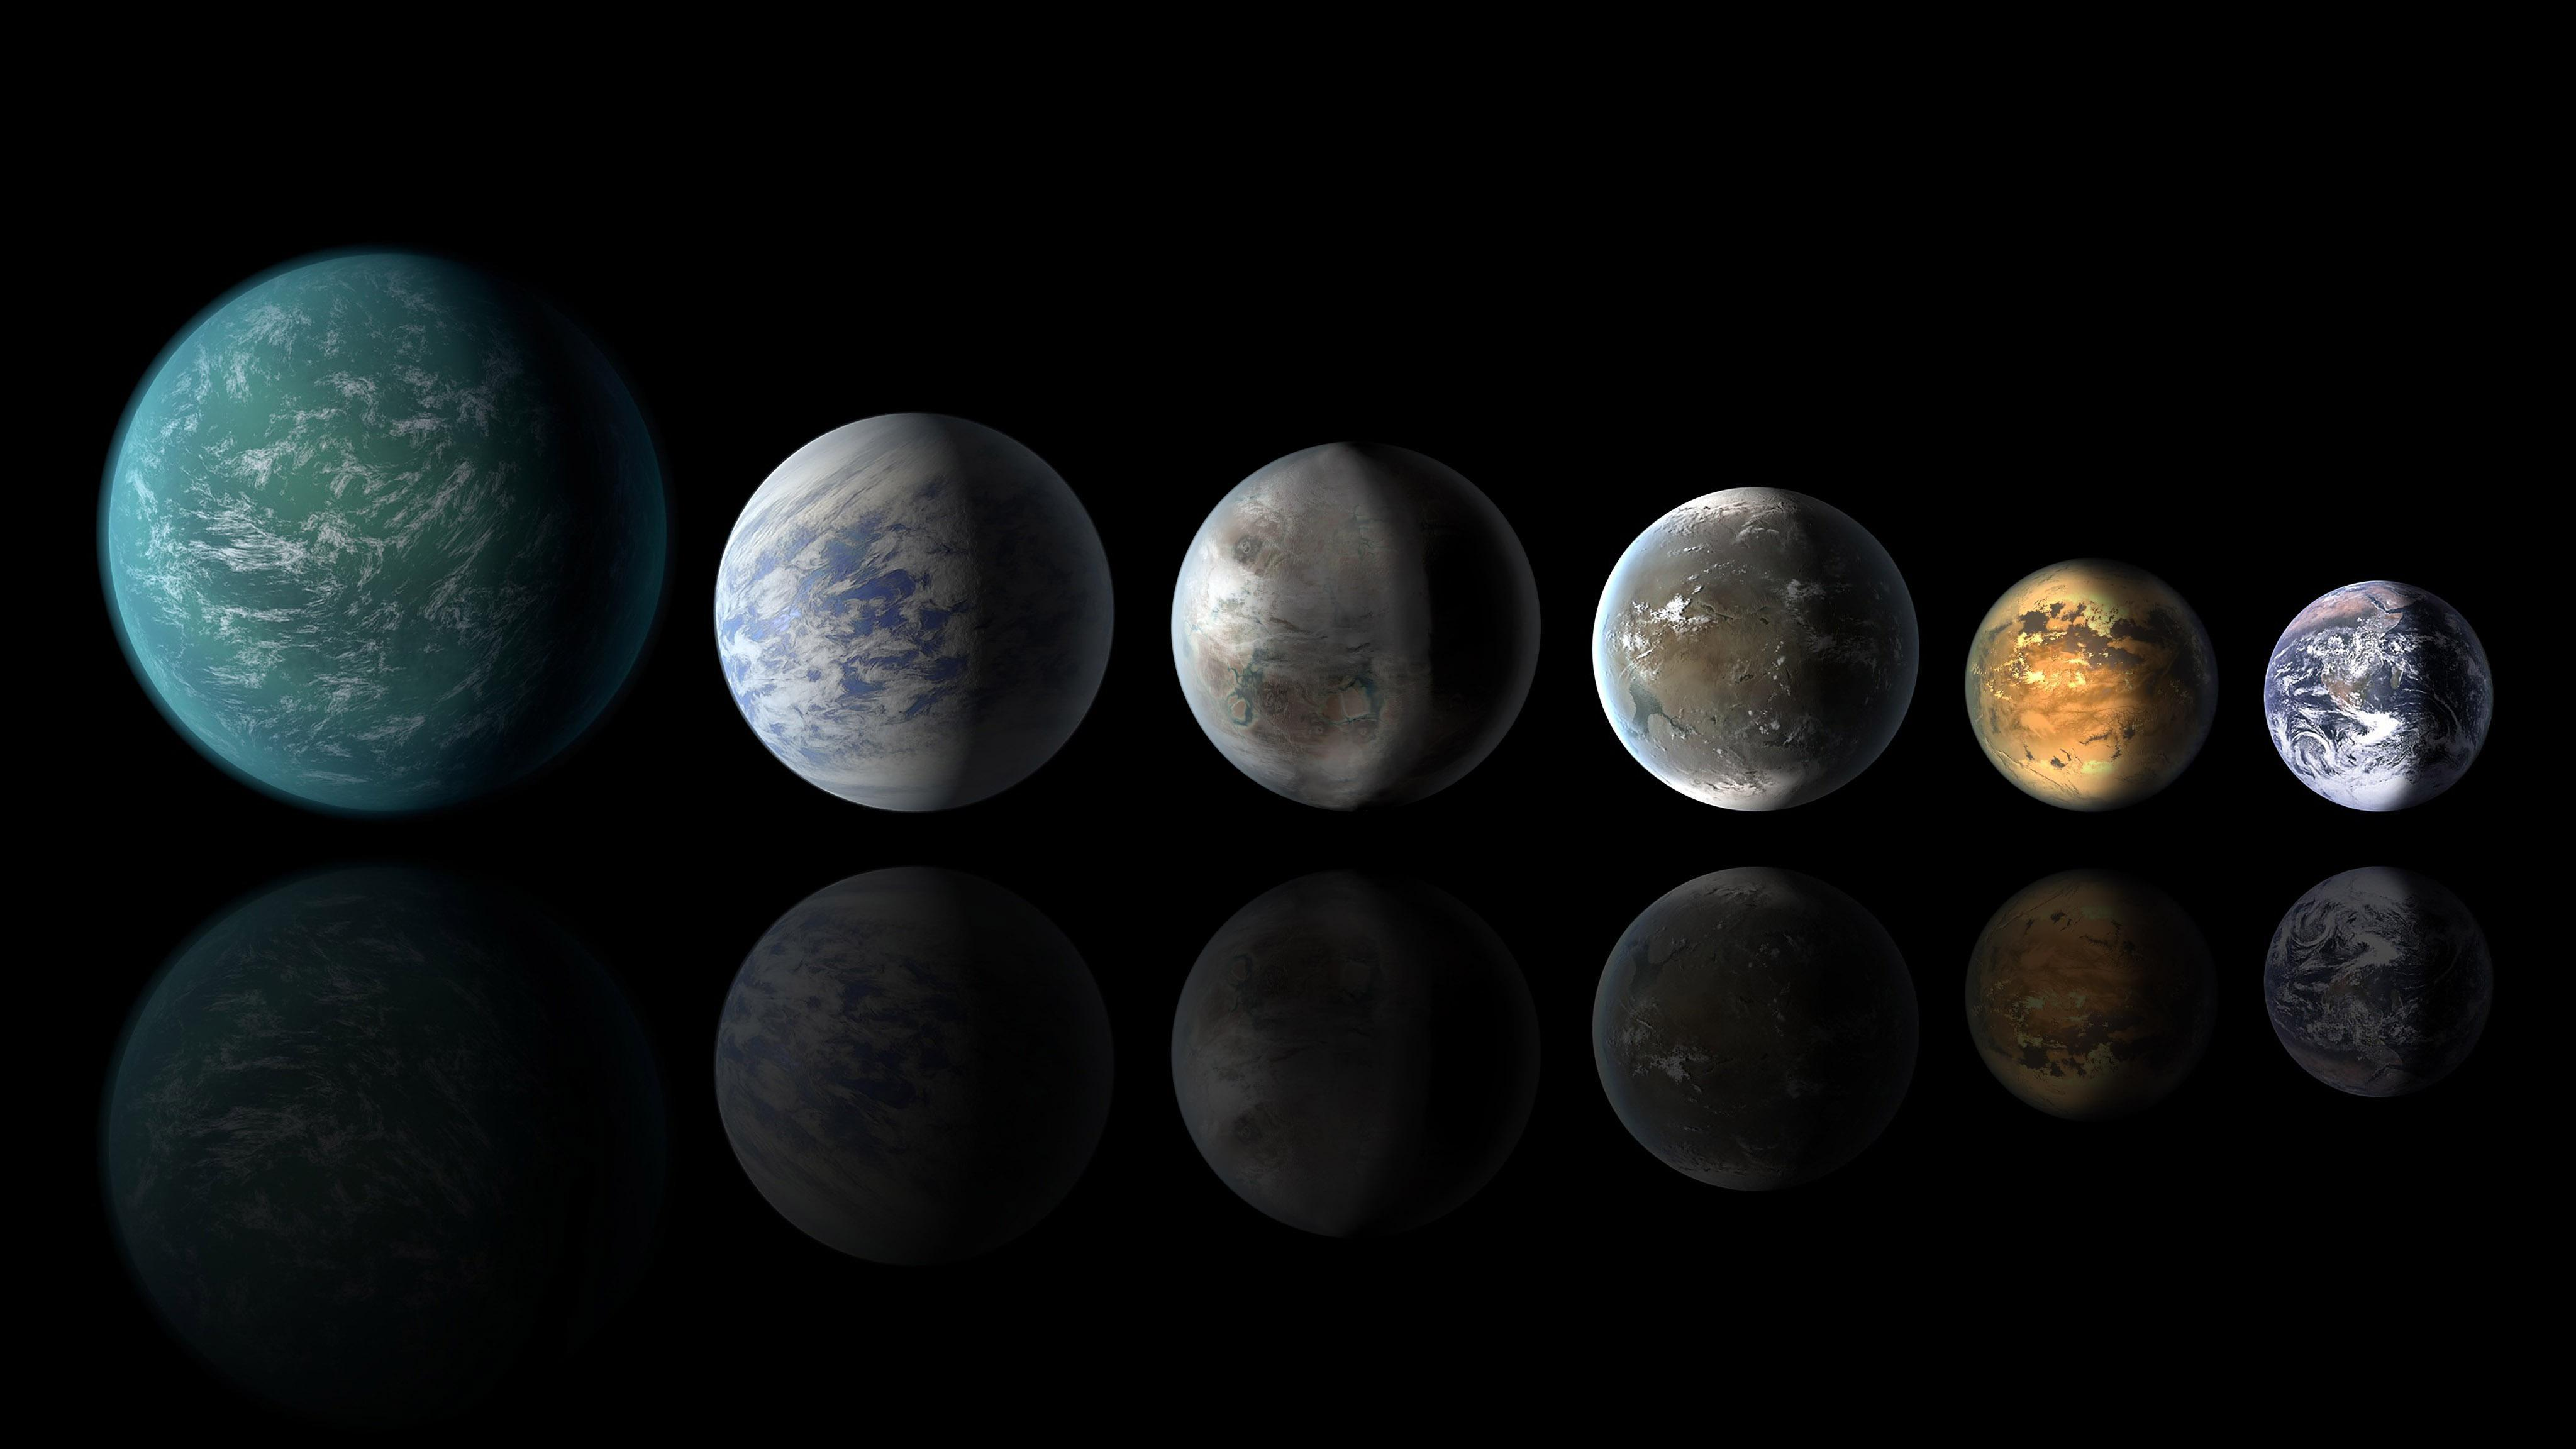 This year's search for another Earth brought discoveries from the far-flung corners of the galaxy. This image shows the relative sizes of all of the habitable-zone planets discovered to date alongside Earth. Left to right: Kepler-22b, Kepler-69c, Kepler-62e, Kepler-62f and Earth (except for Earth, these are artists' concepts). Image credit: NASA Ames/JPL-Caltech